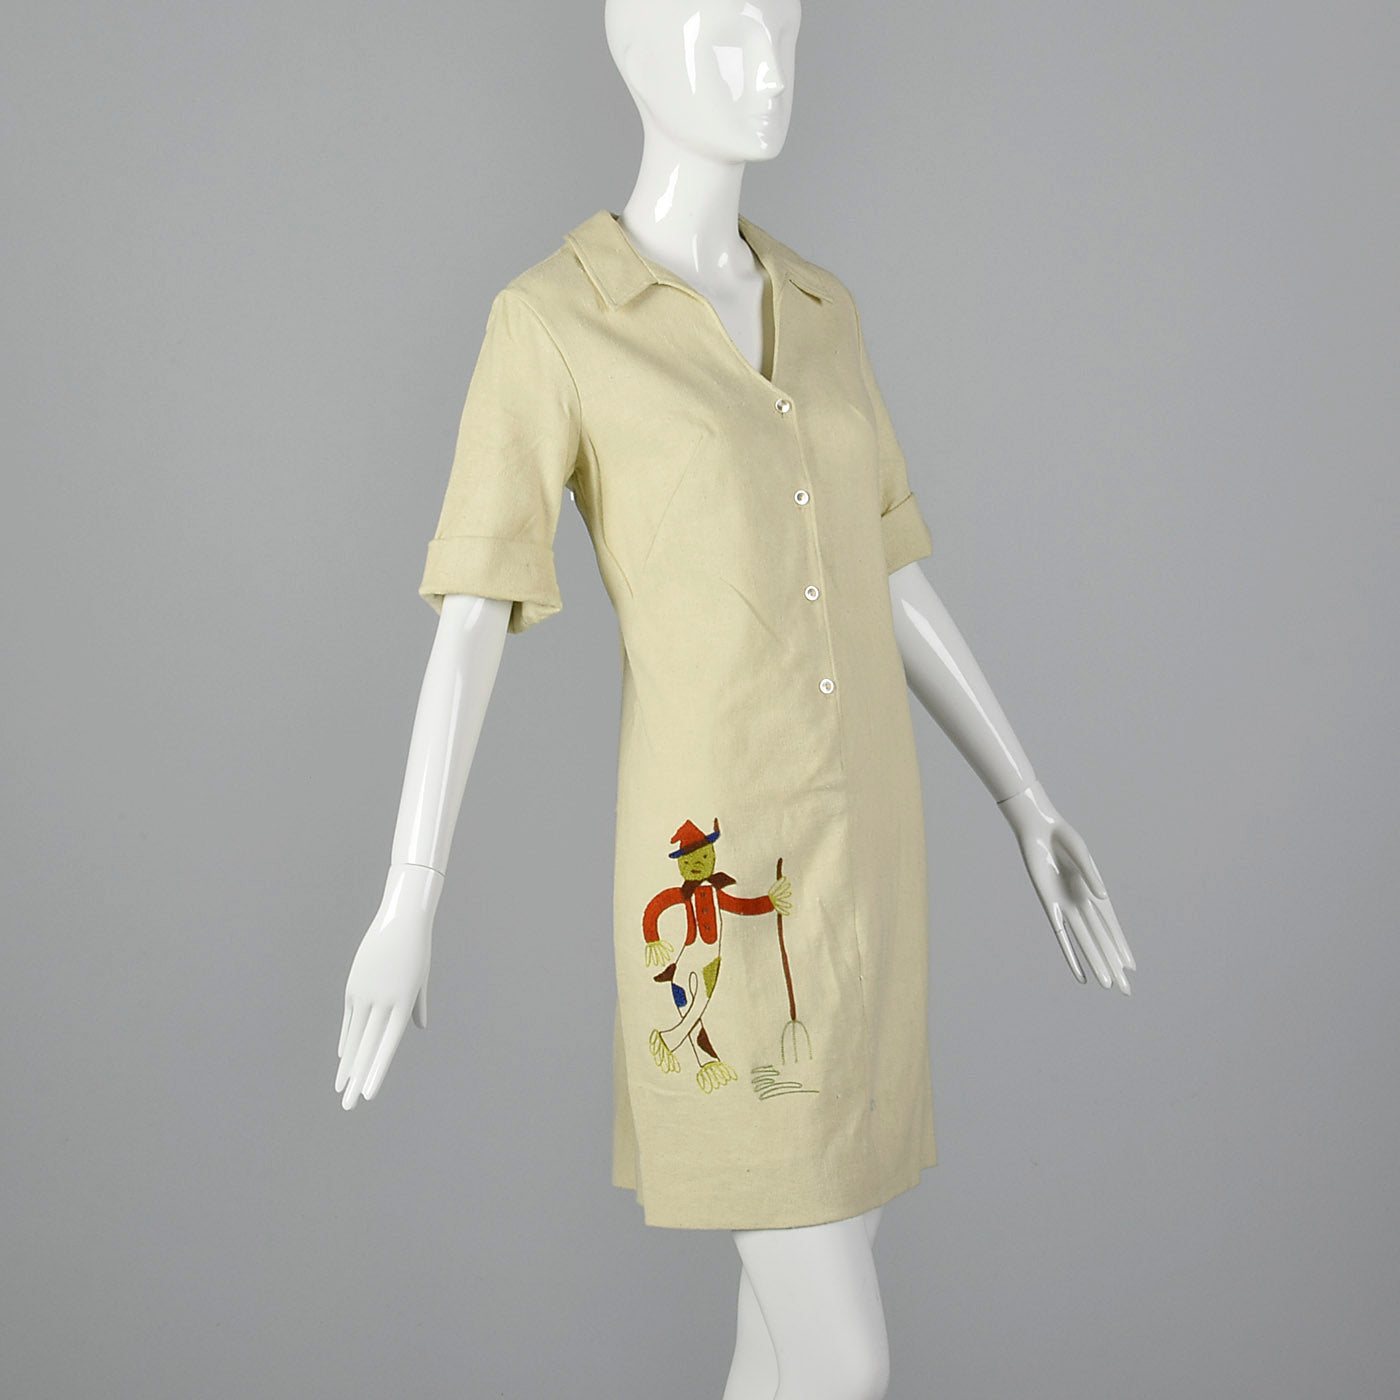 1960s Novelty Scarecrow Dress